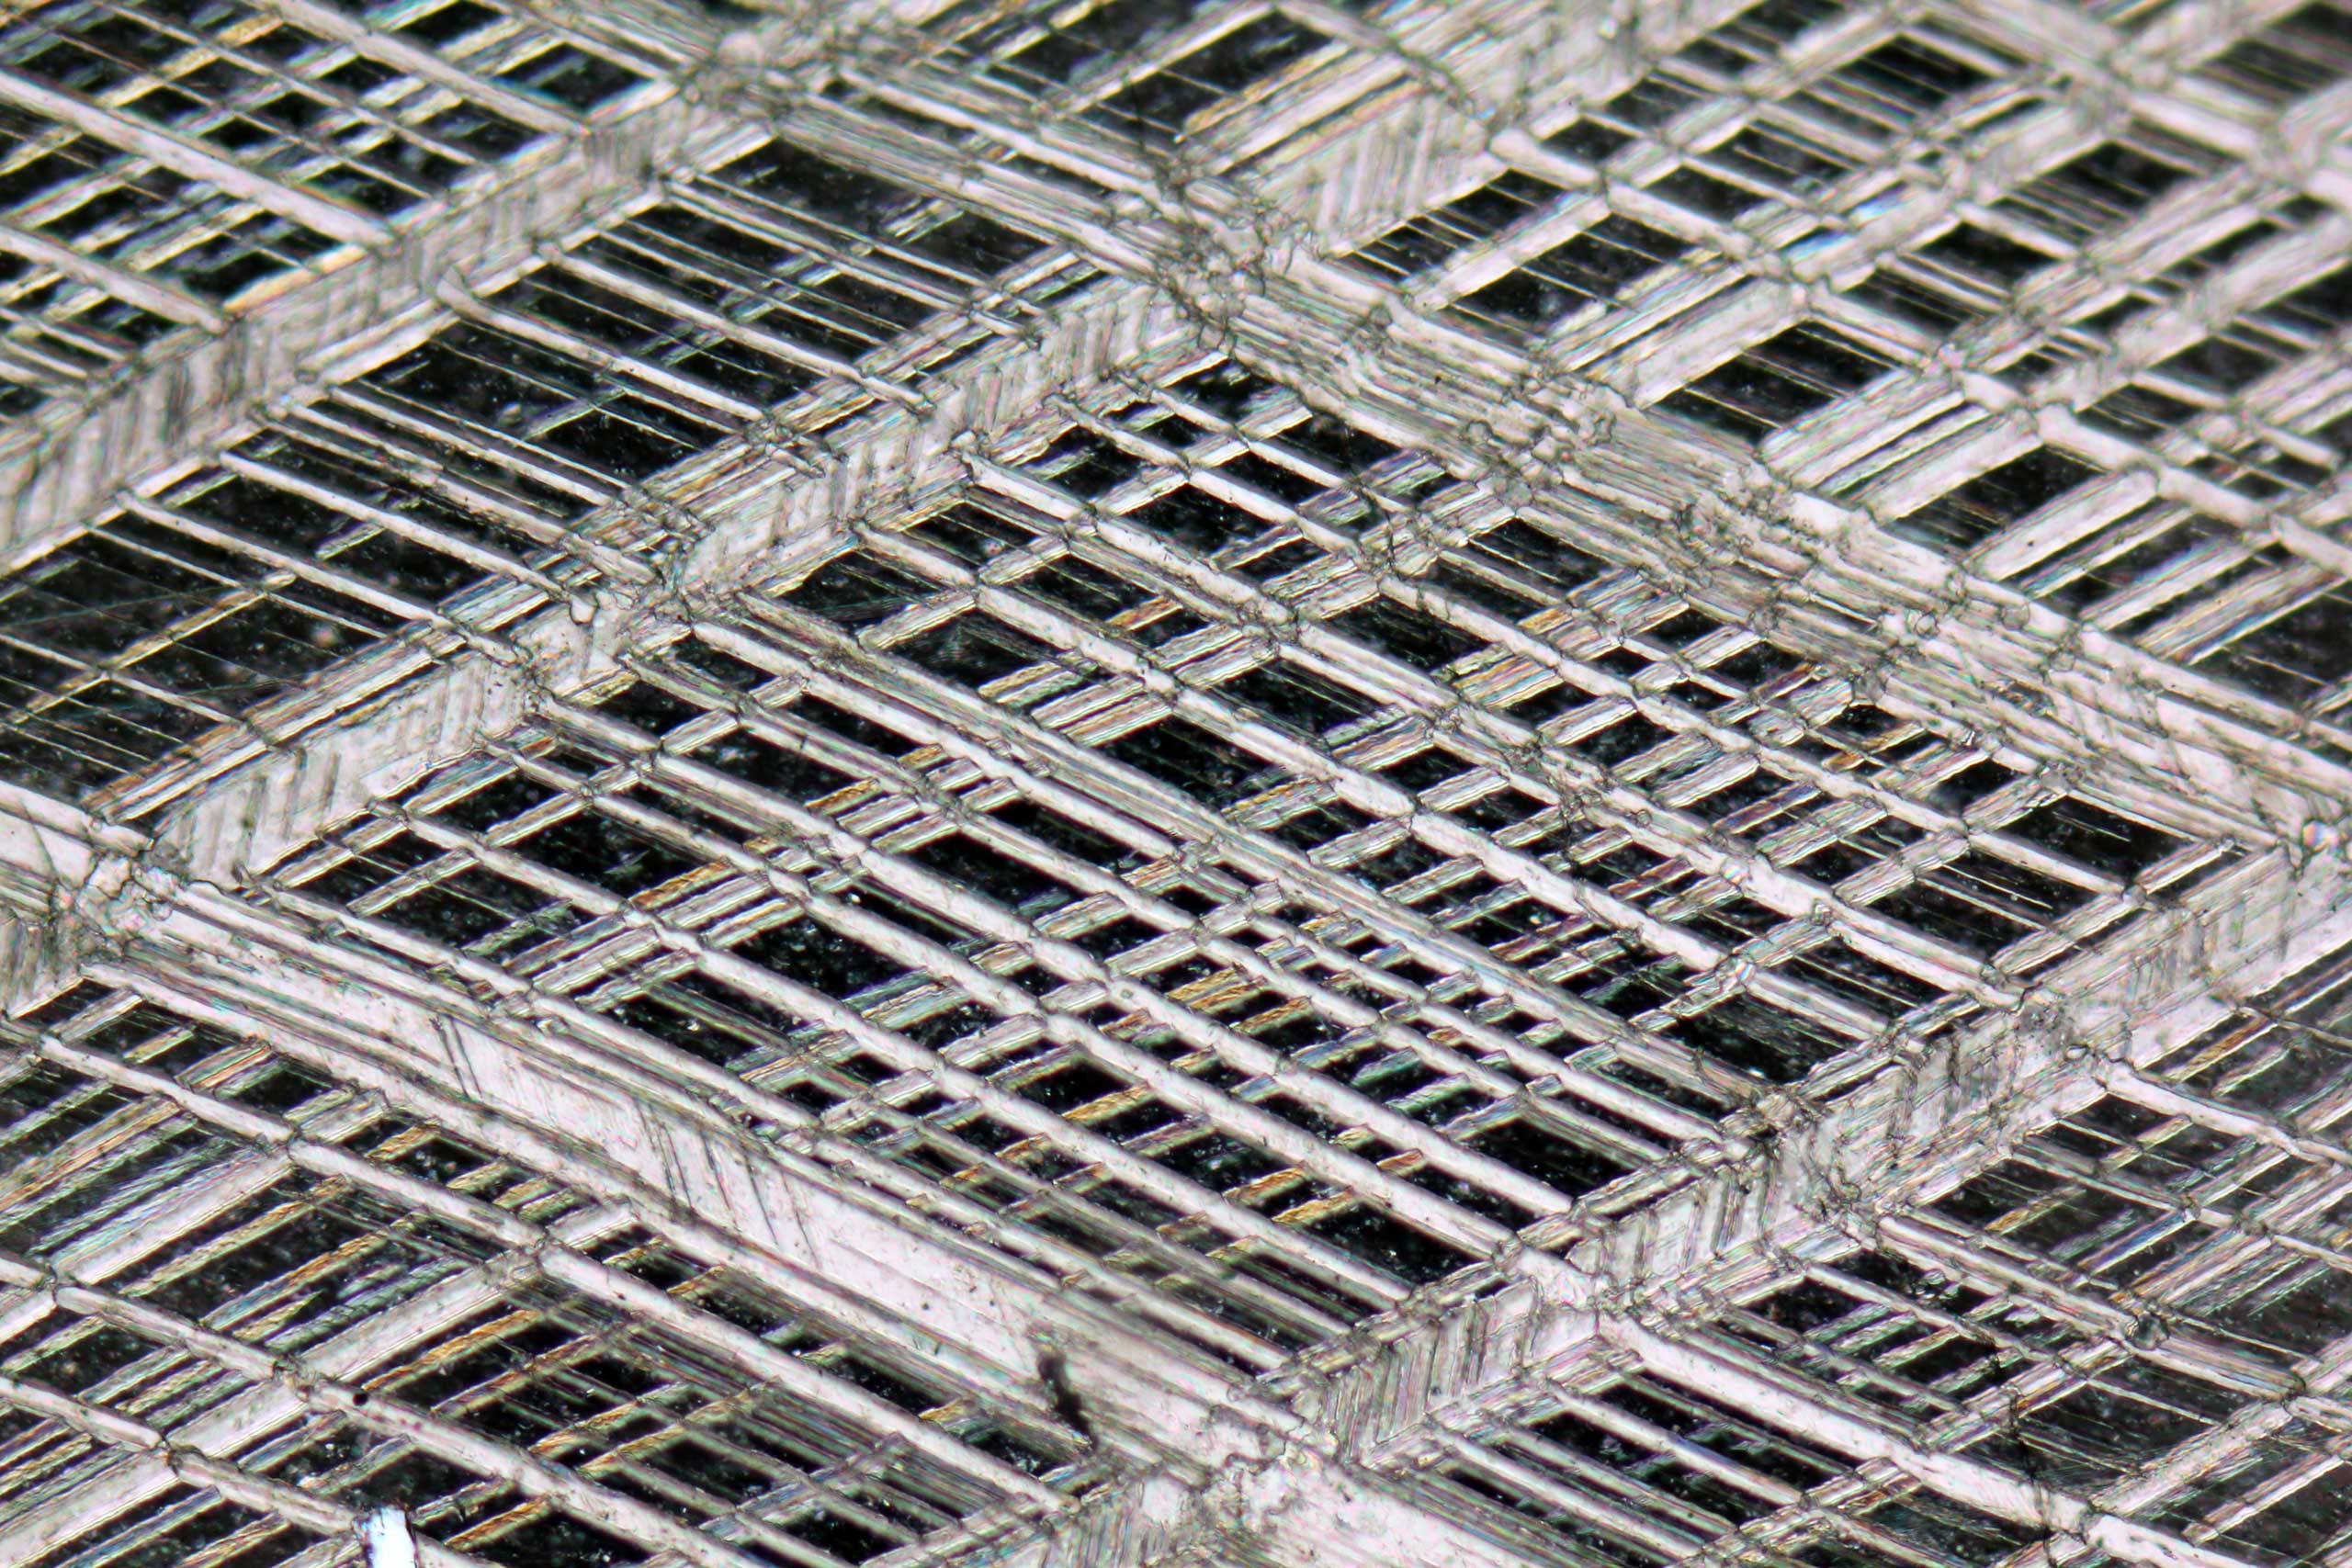 A rhombohedral cleavage in calcite crystal at 10x magnification.